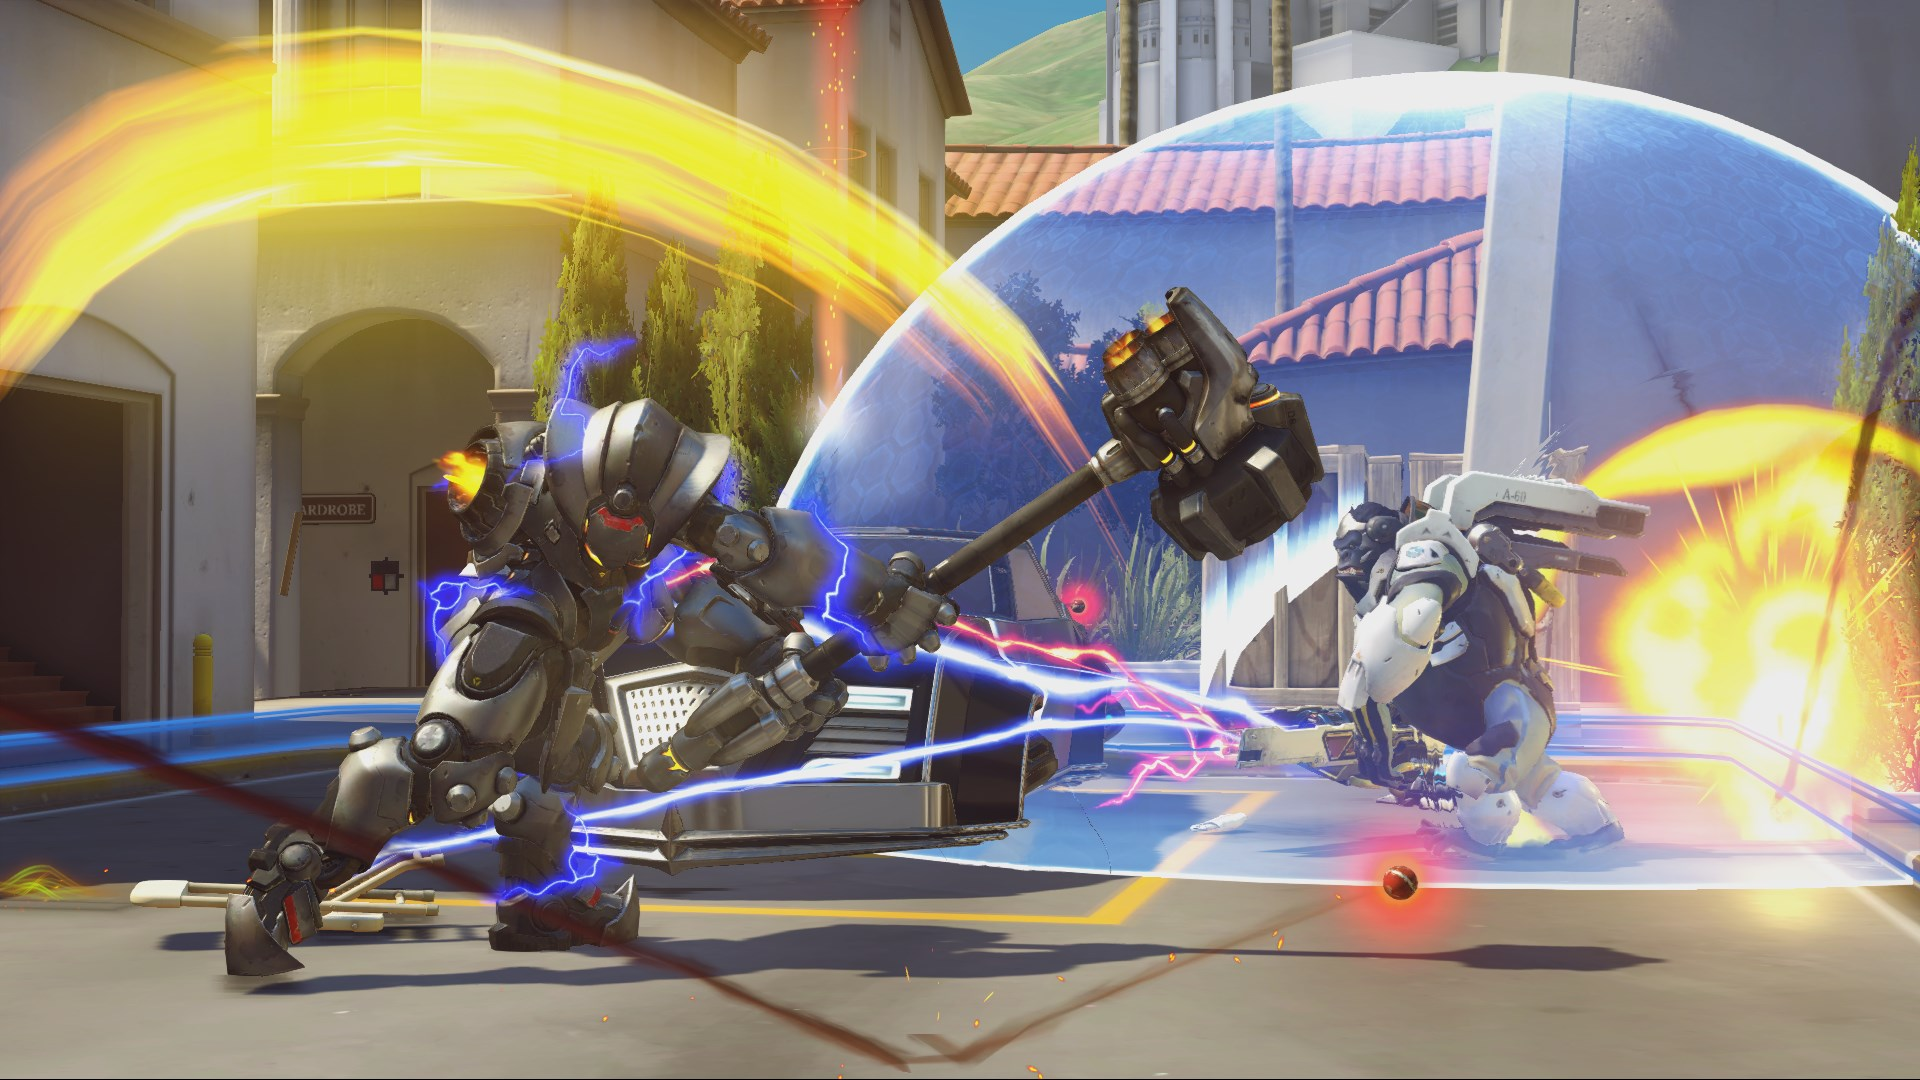 Reinhardt swings for Winston in Overwatch